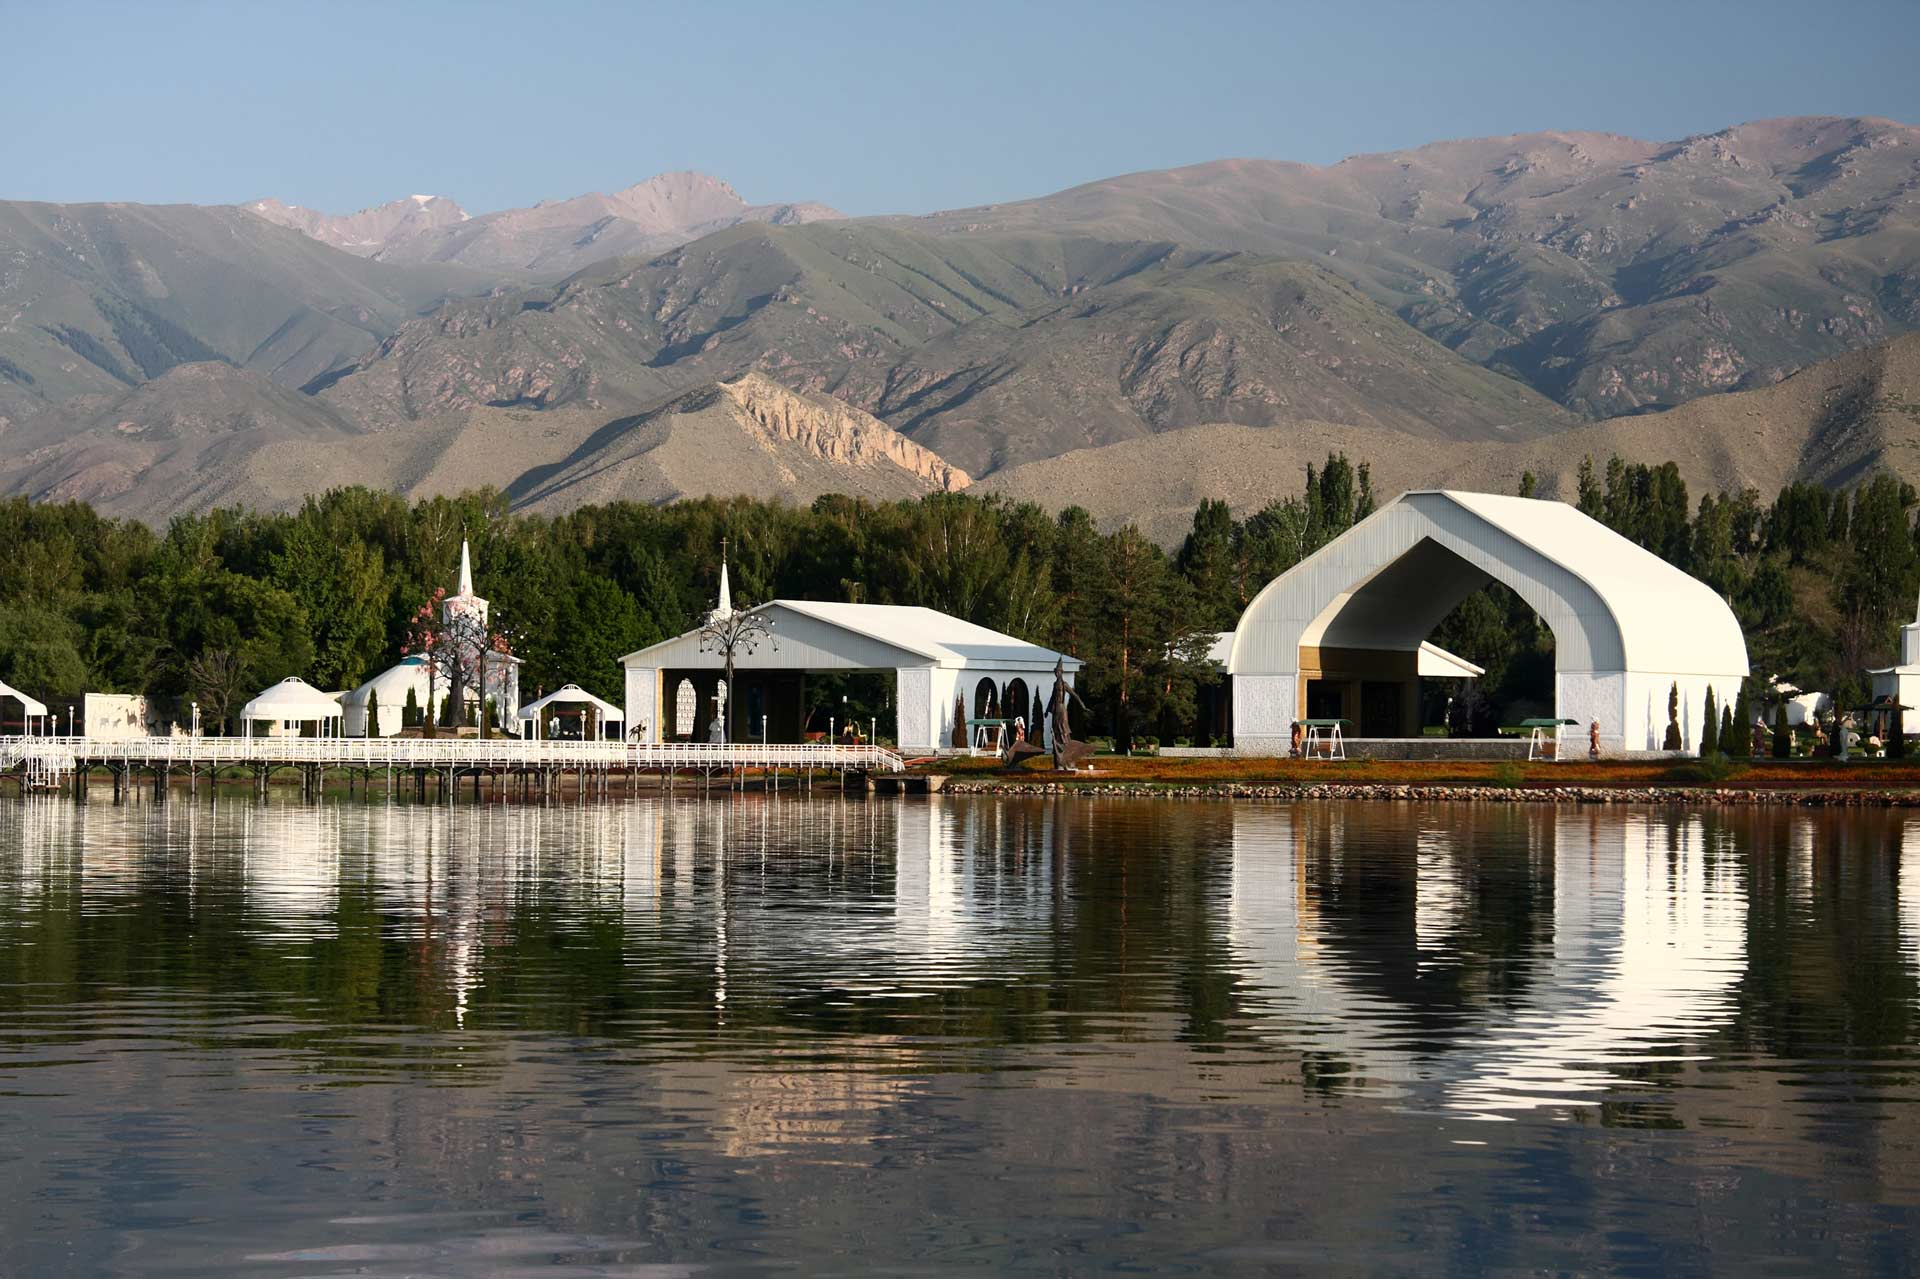 Architectural complex on the bank of mountain lake.Kyrgyzstan. Lake Issyk-kul.